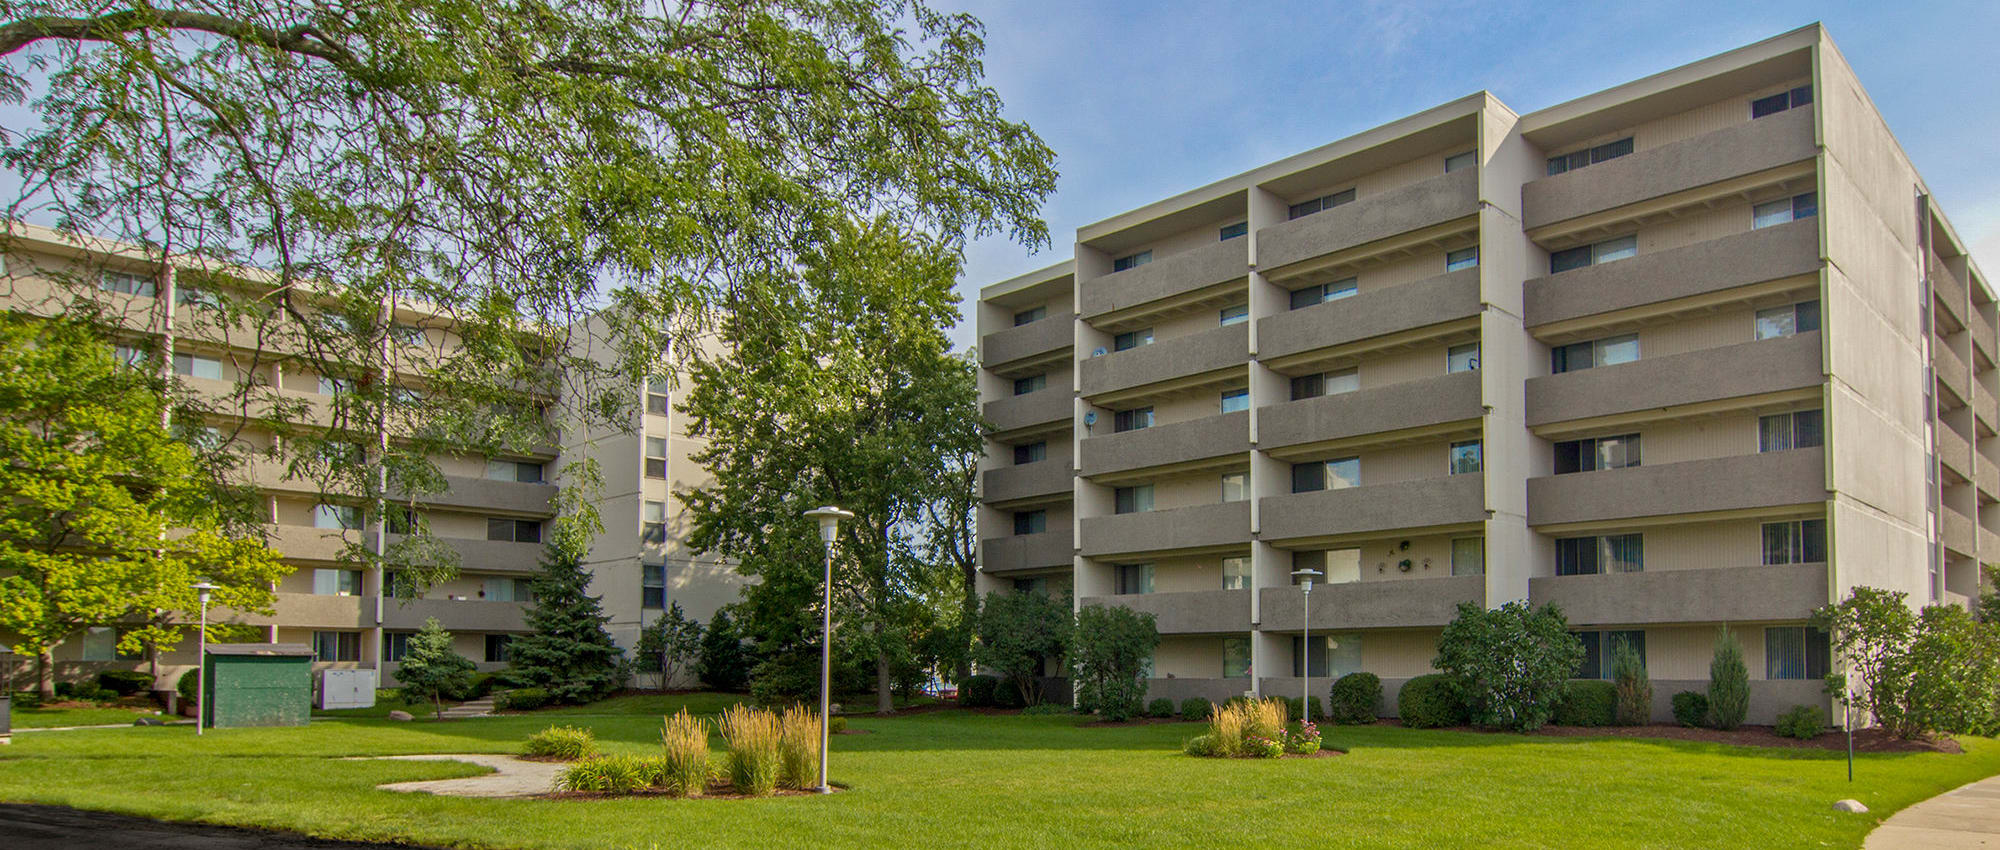 Apartments at Park Towers Apartments in Richton Park, Illinois